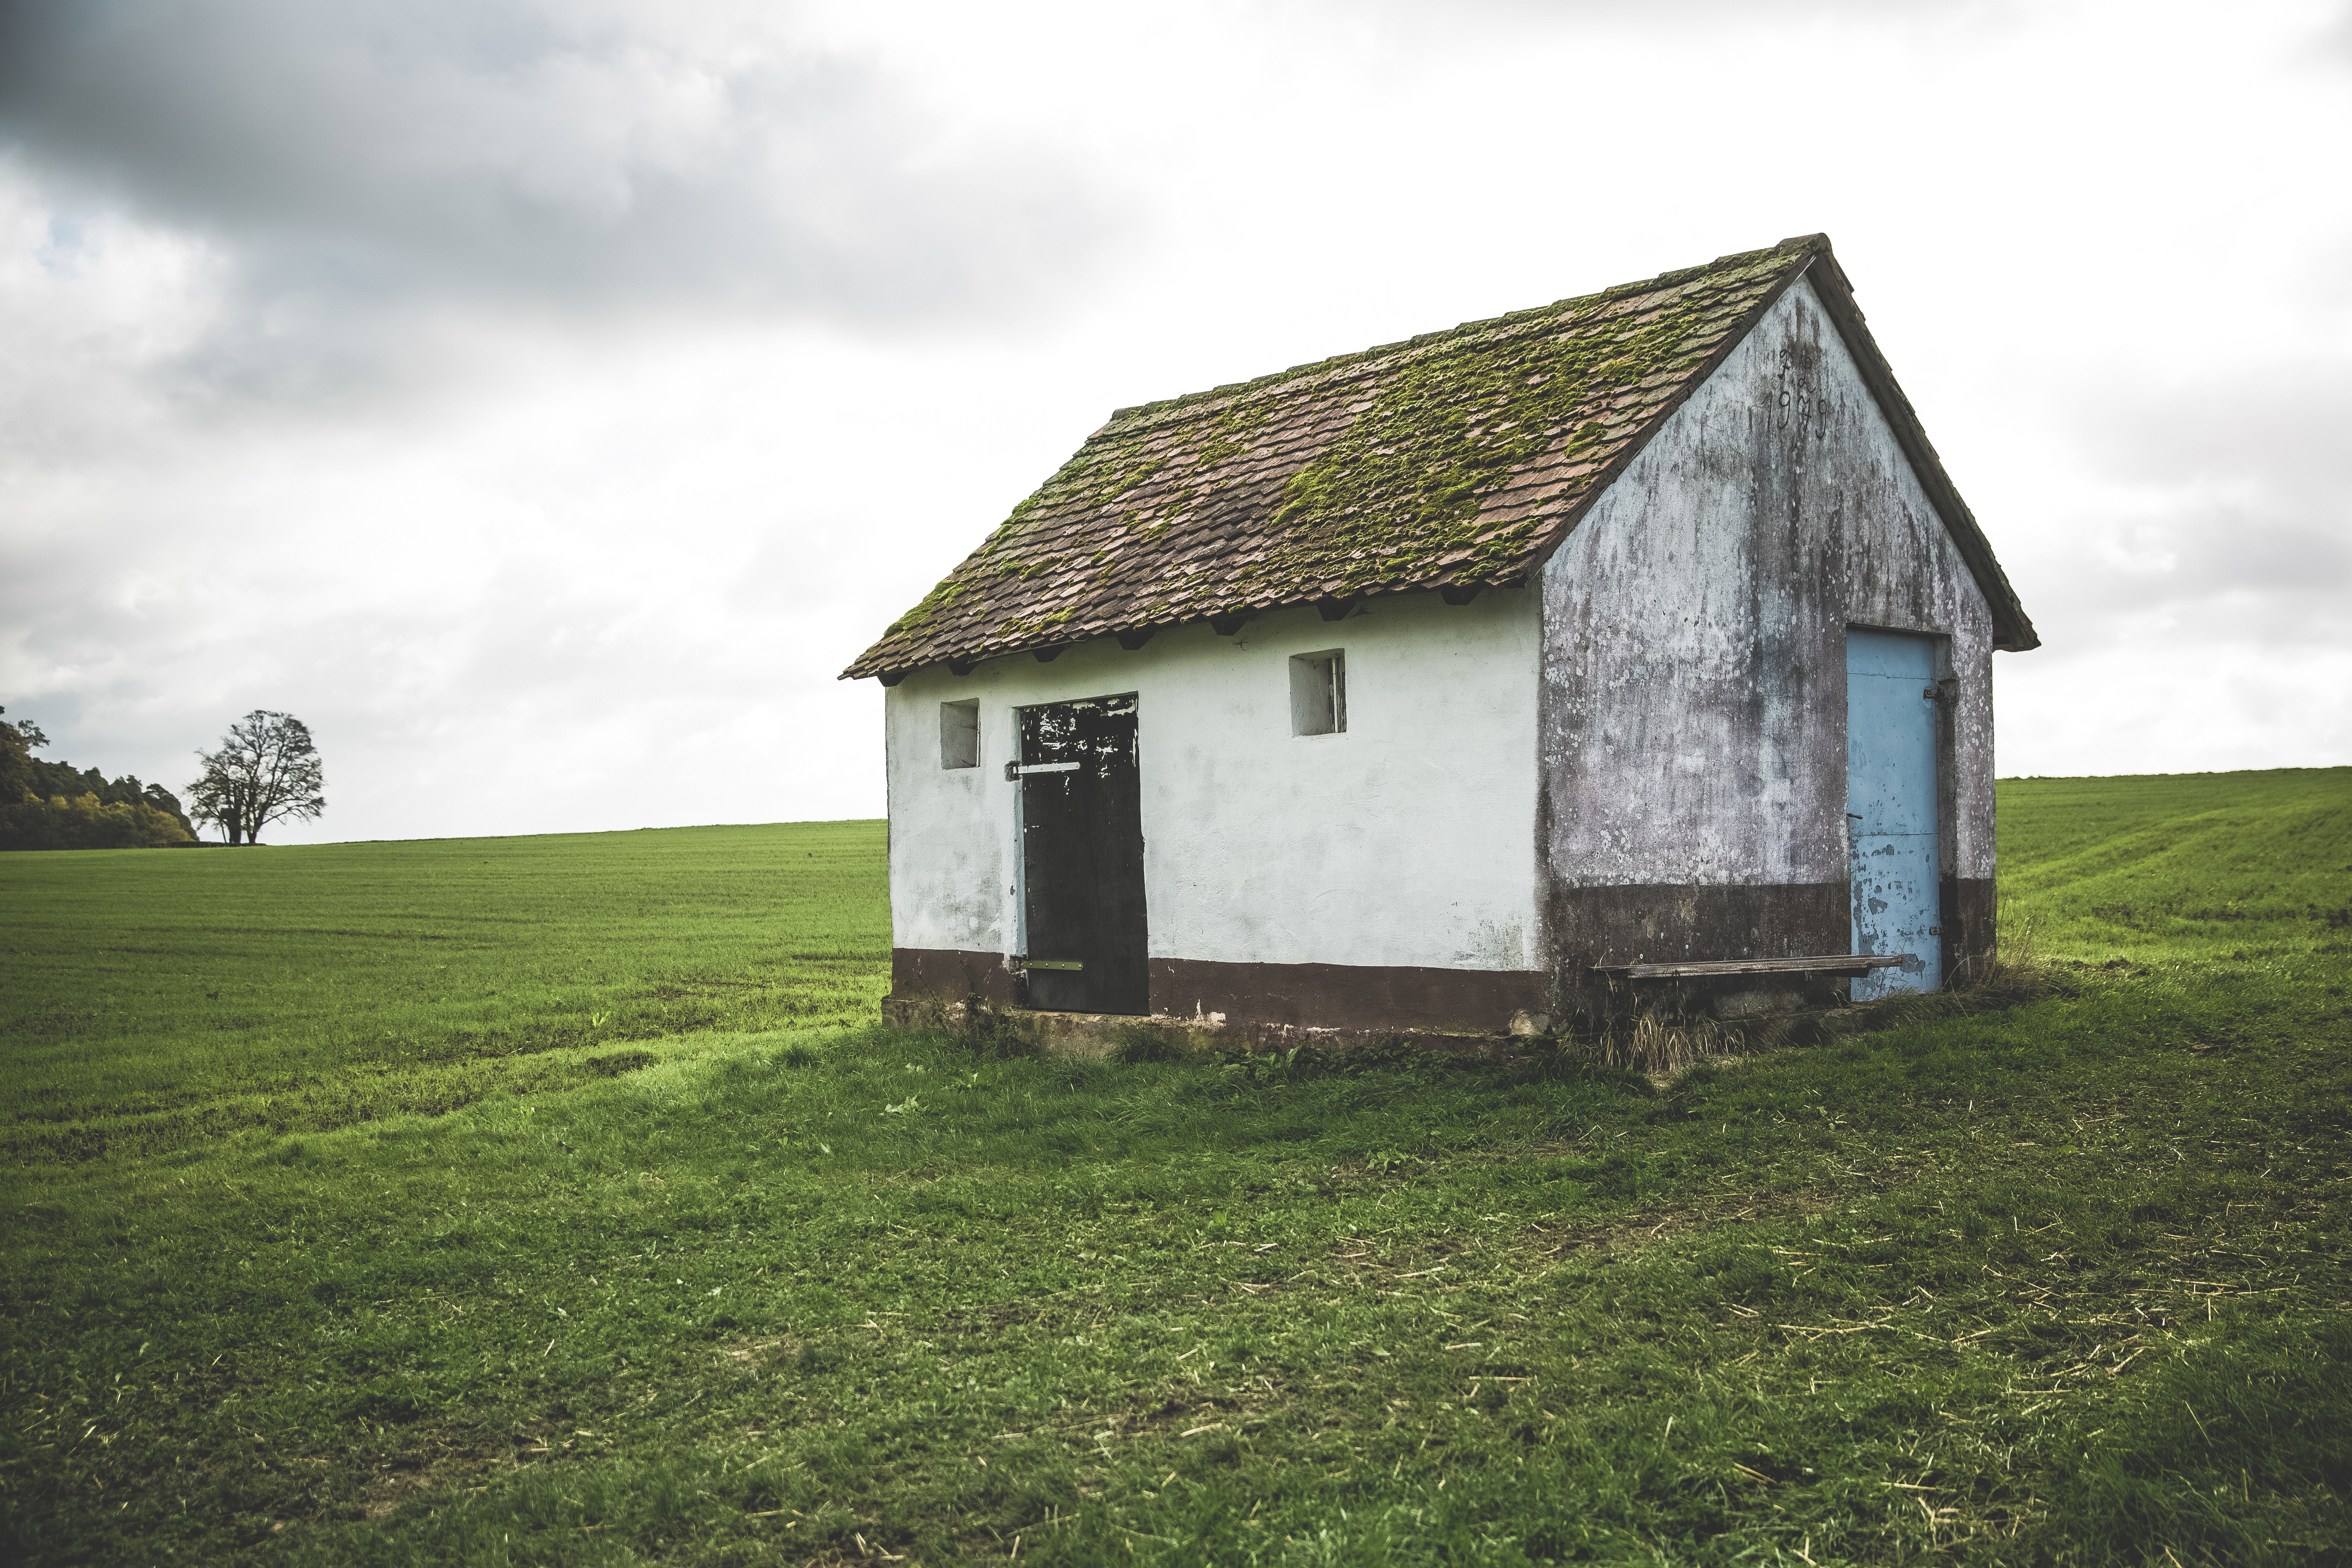 brown and white wooden shed on field of grass